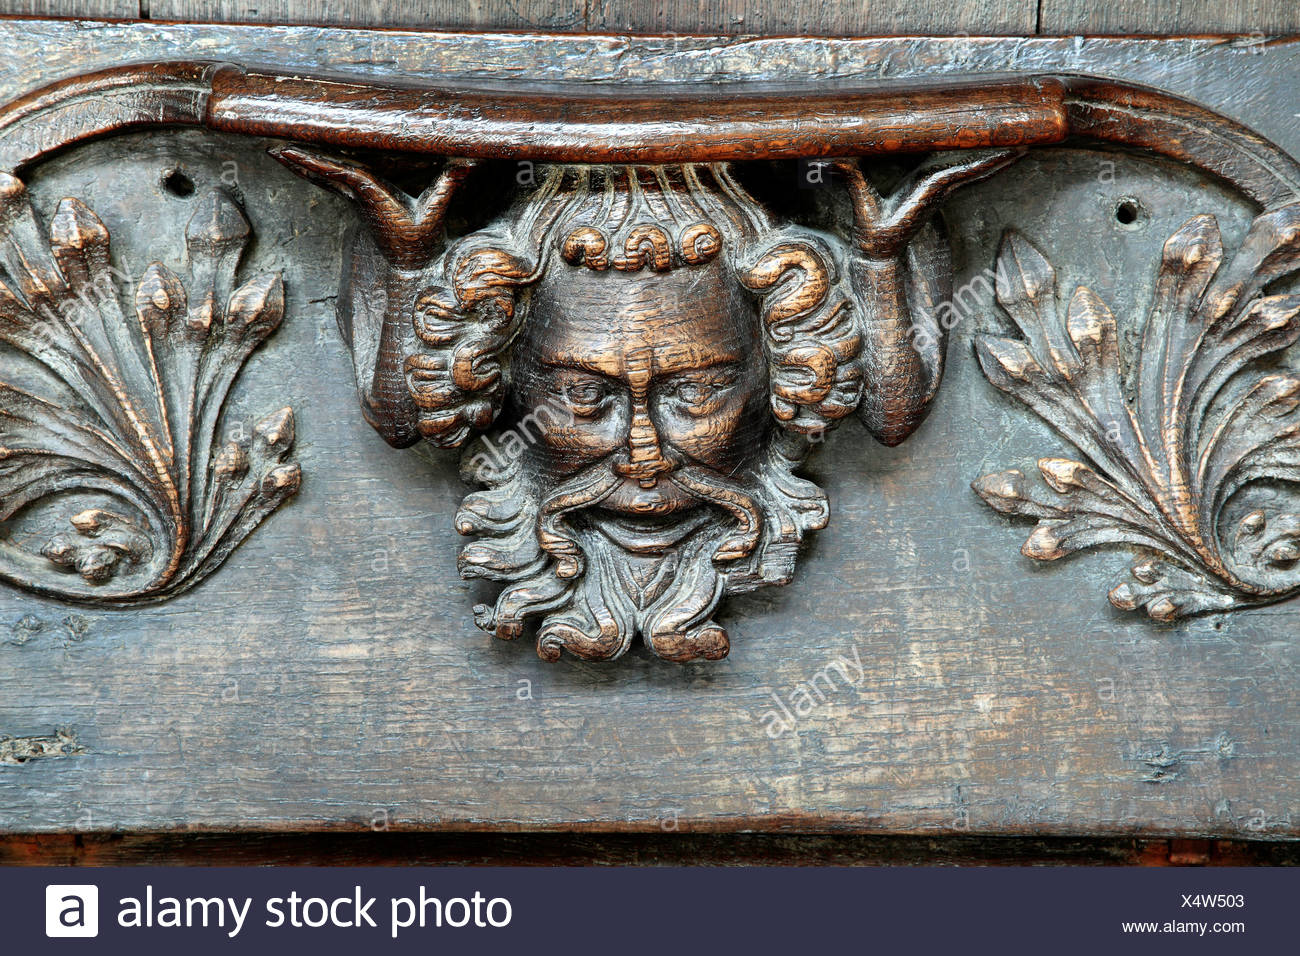 14th century medieval misericord, bearded man supporting seat, St. Margarets, Kings Lynn Norfolk England UK English misericords - Stock Image